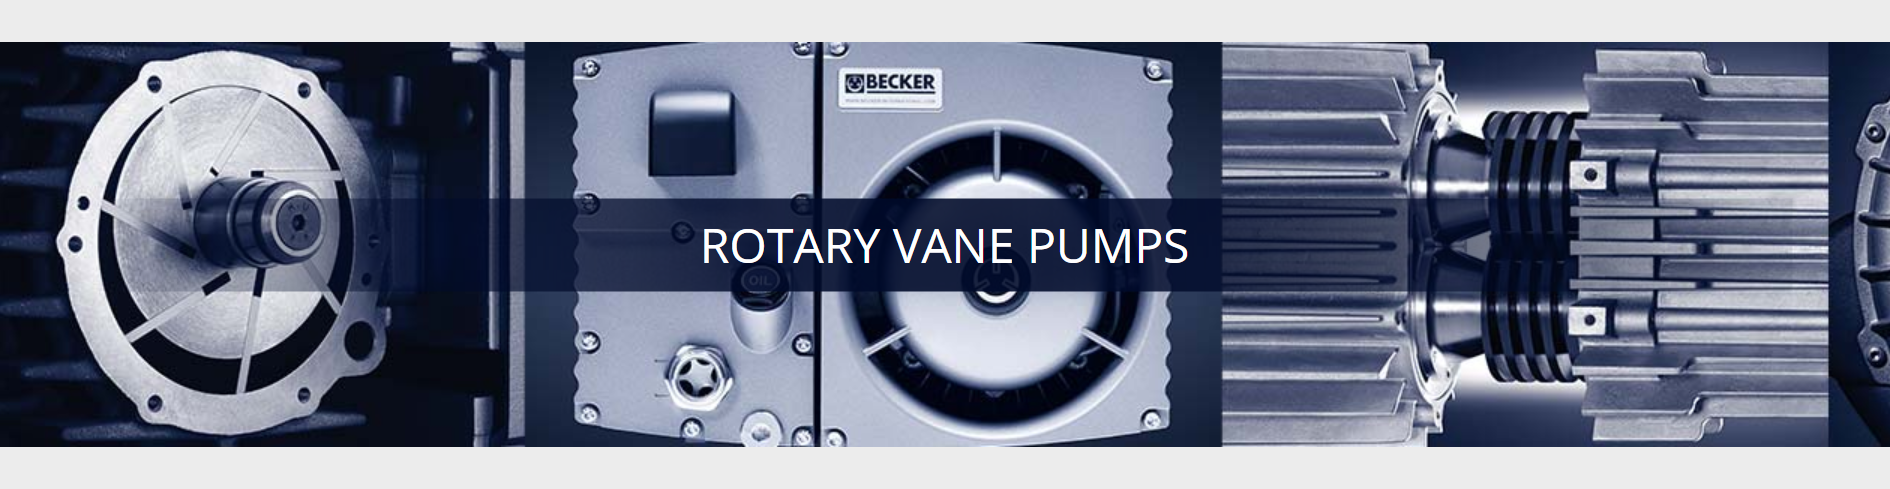 Becker Rotary Vane Pumps